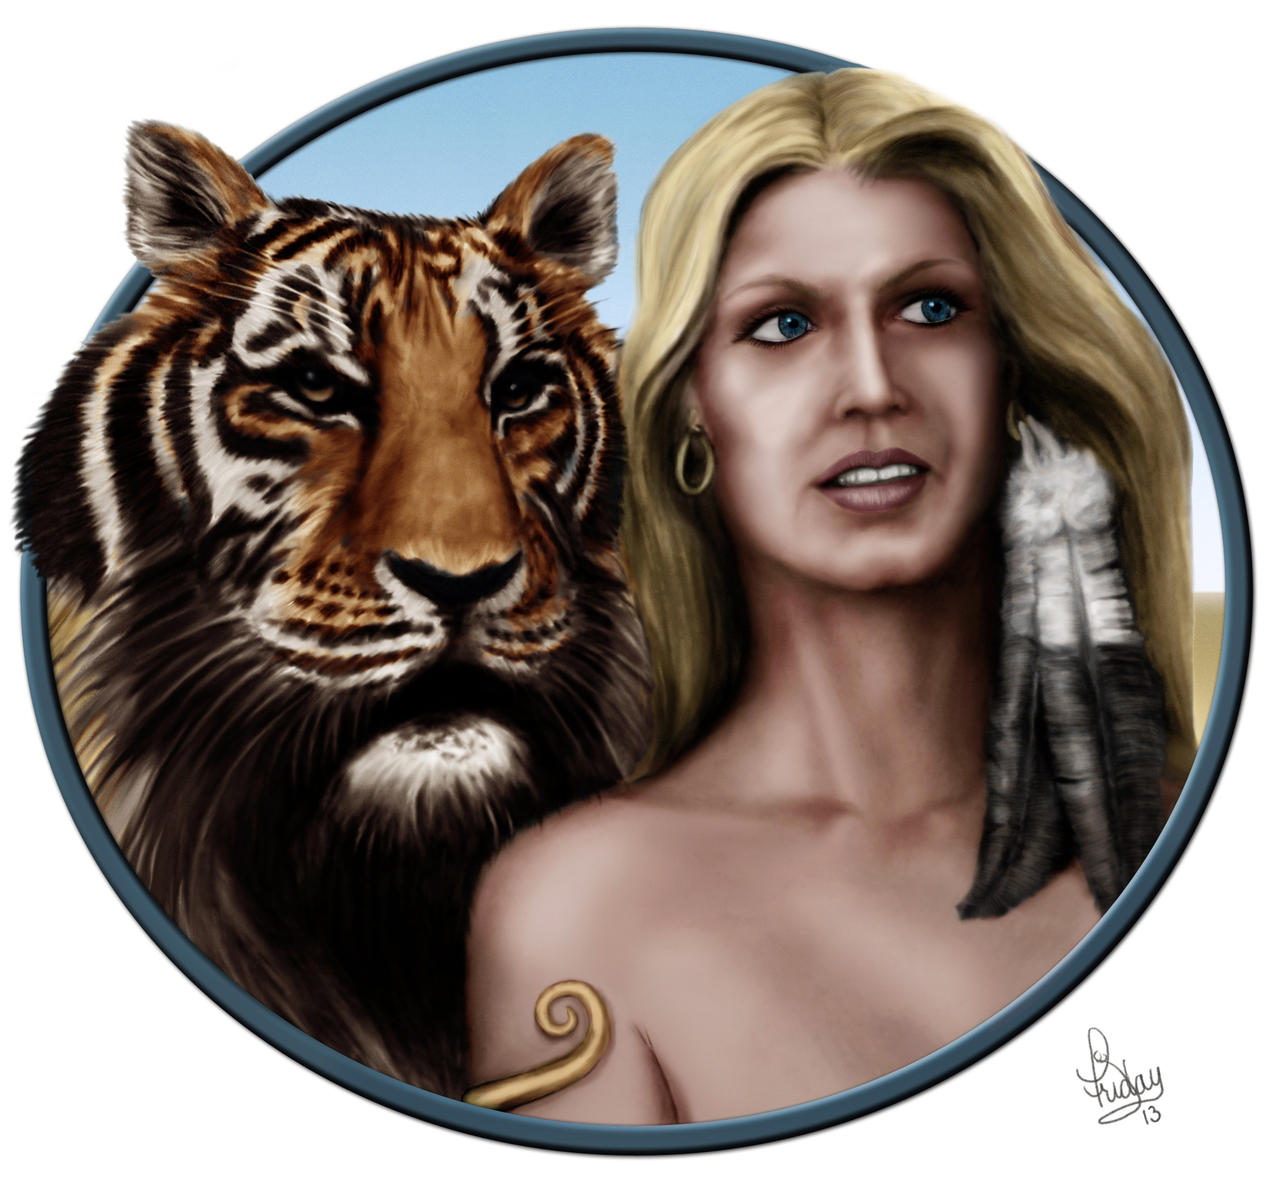 the lady and the tiger by pixel slinger on   the lady and the tiger by pixel slinger